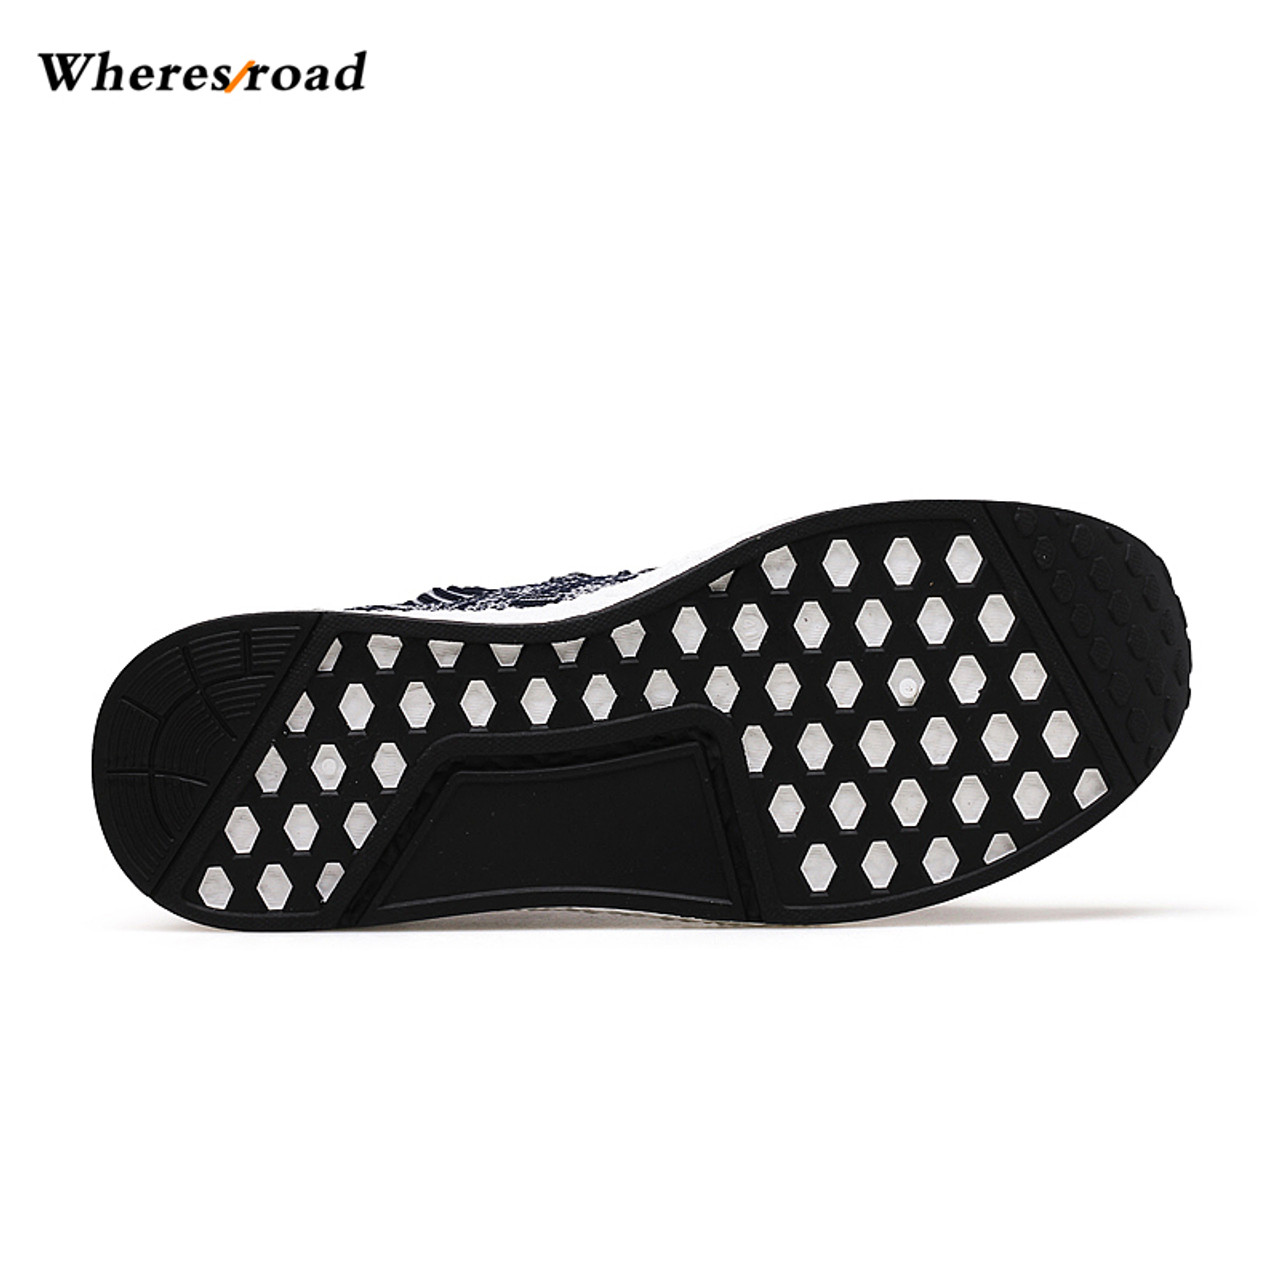 b5c768b51a97 Summer Running Shoes Men New Hot Breathable Mesh Lightweight Sports Jogging  Walking Comfortable male sneakers 1918